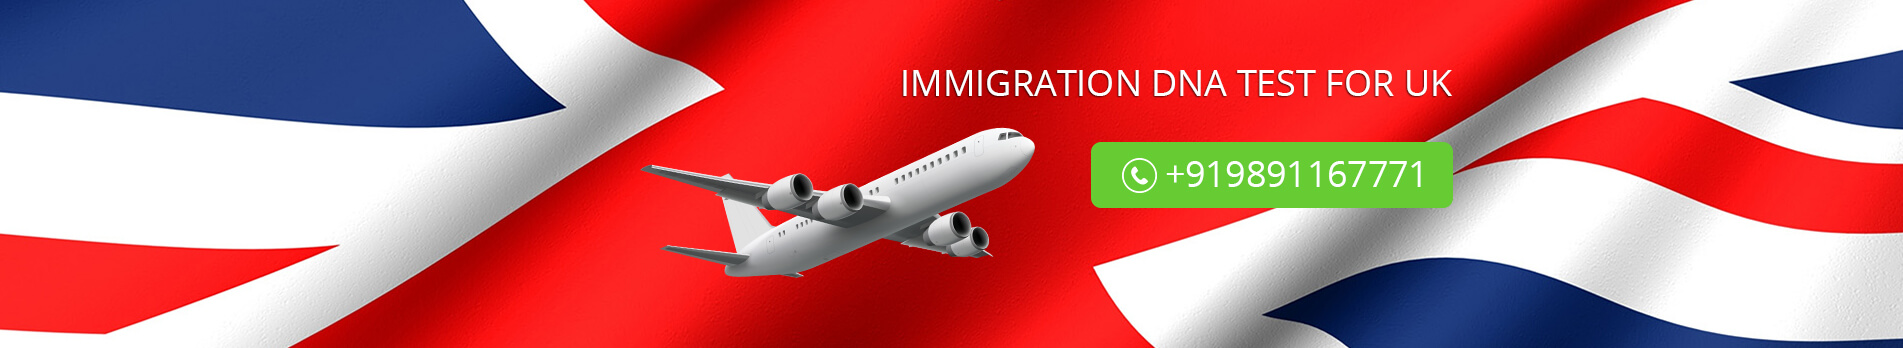 imigrations-banner